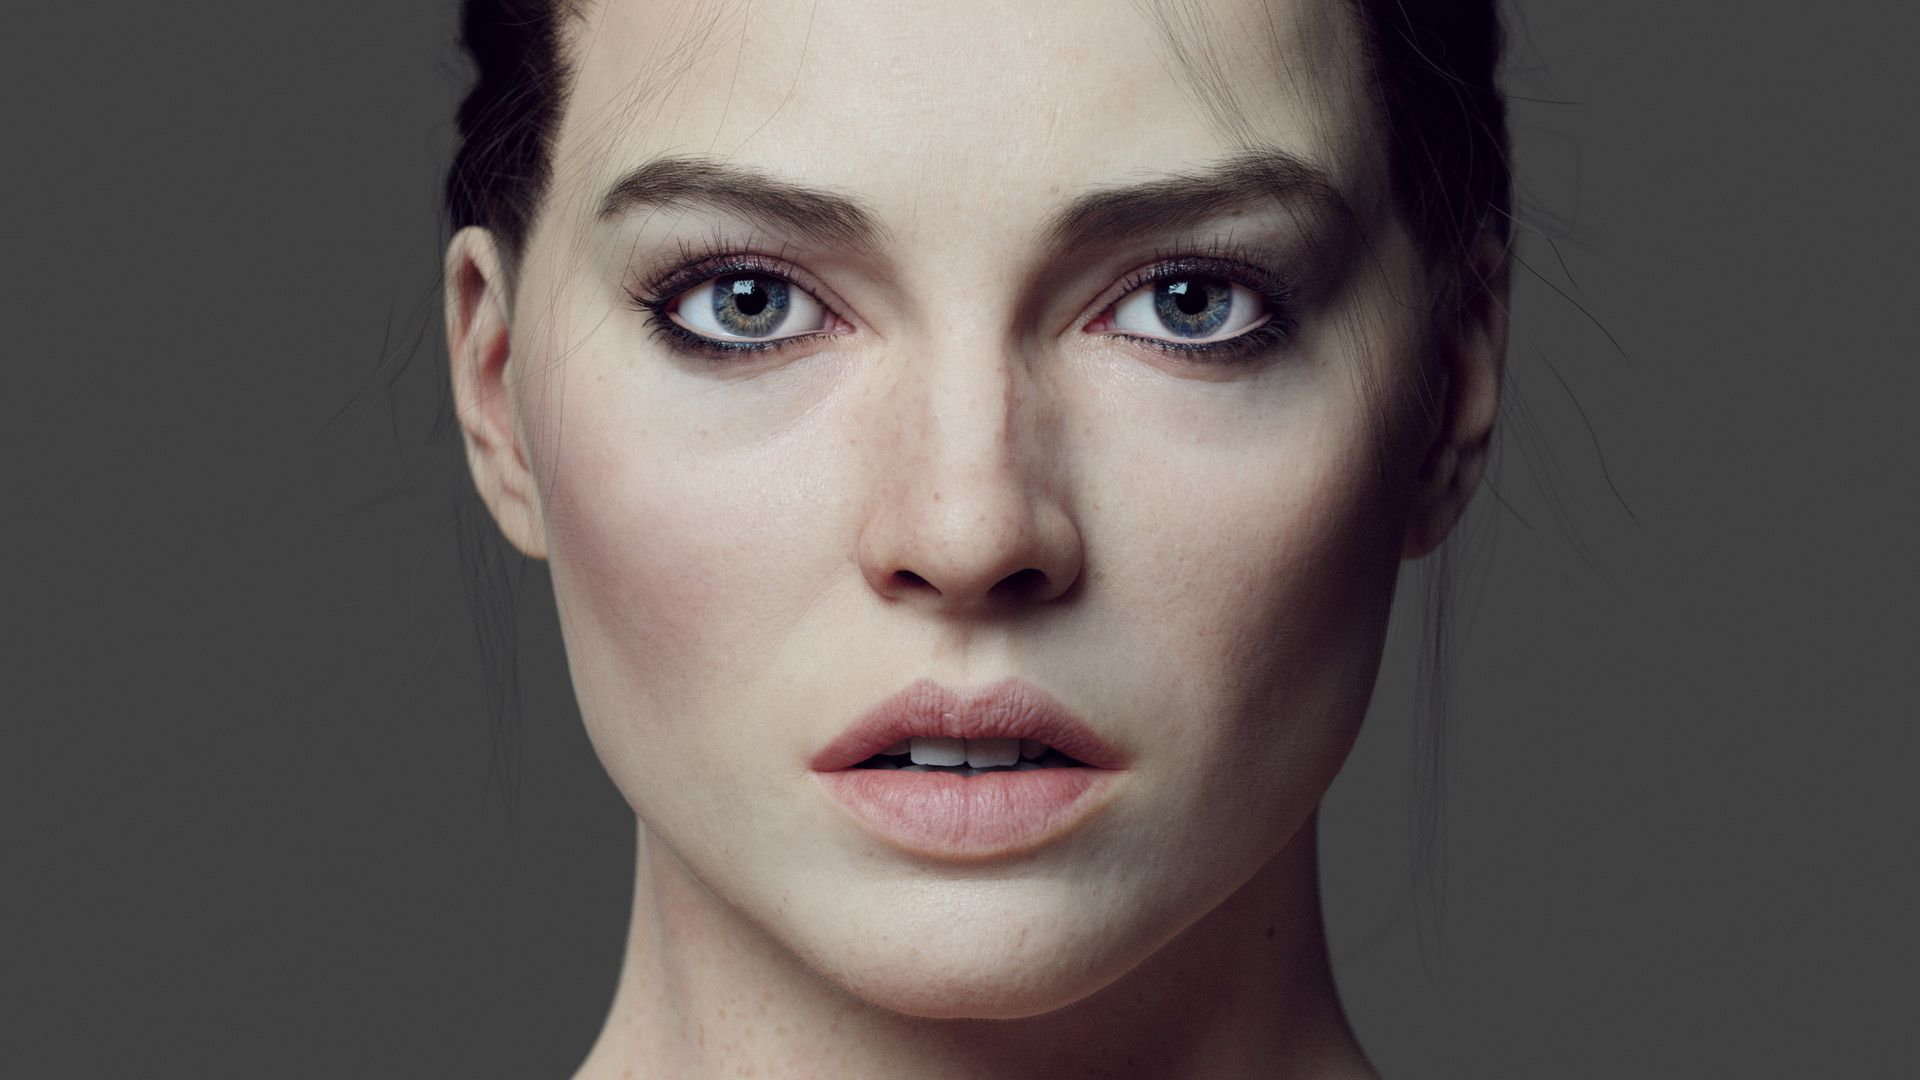 Cg Face Study Wip My Aim Was To Create A Photorealistic Cg Character Ready  For